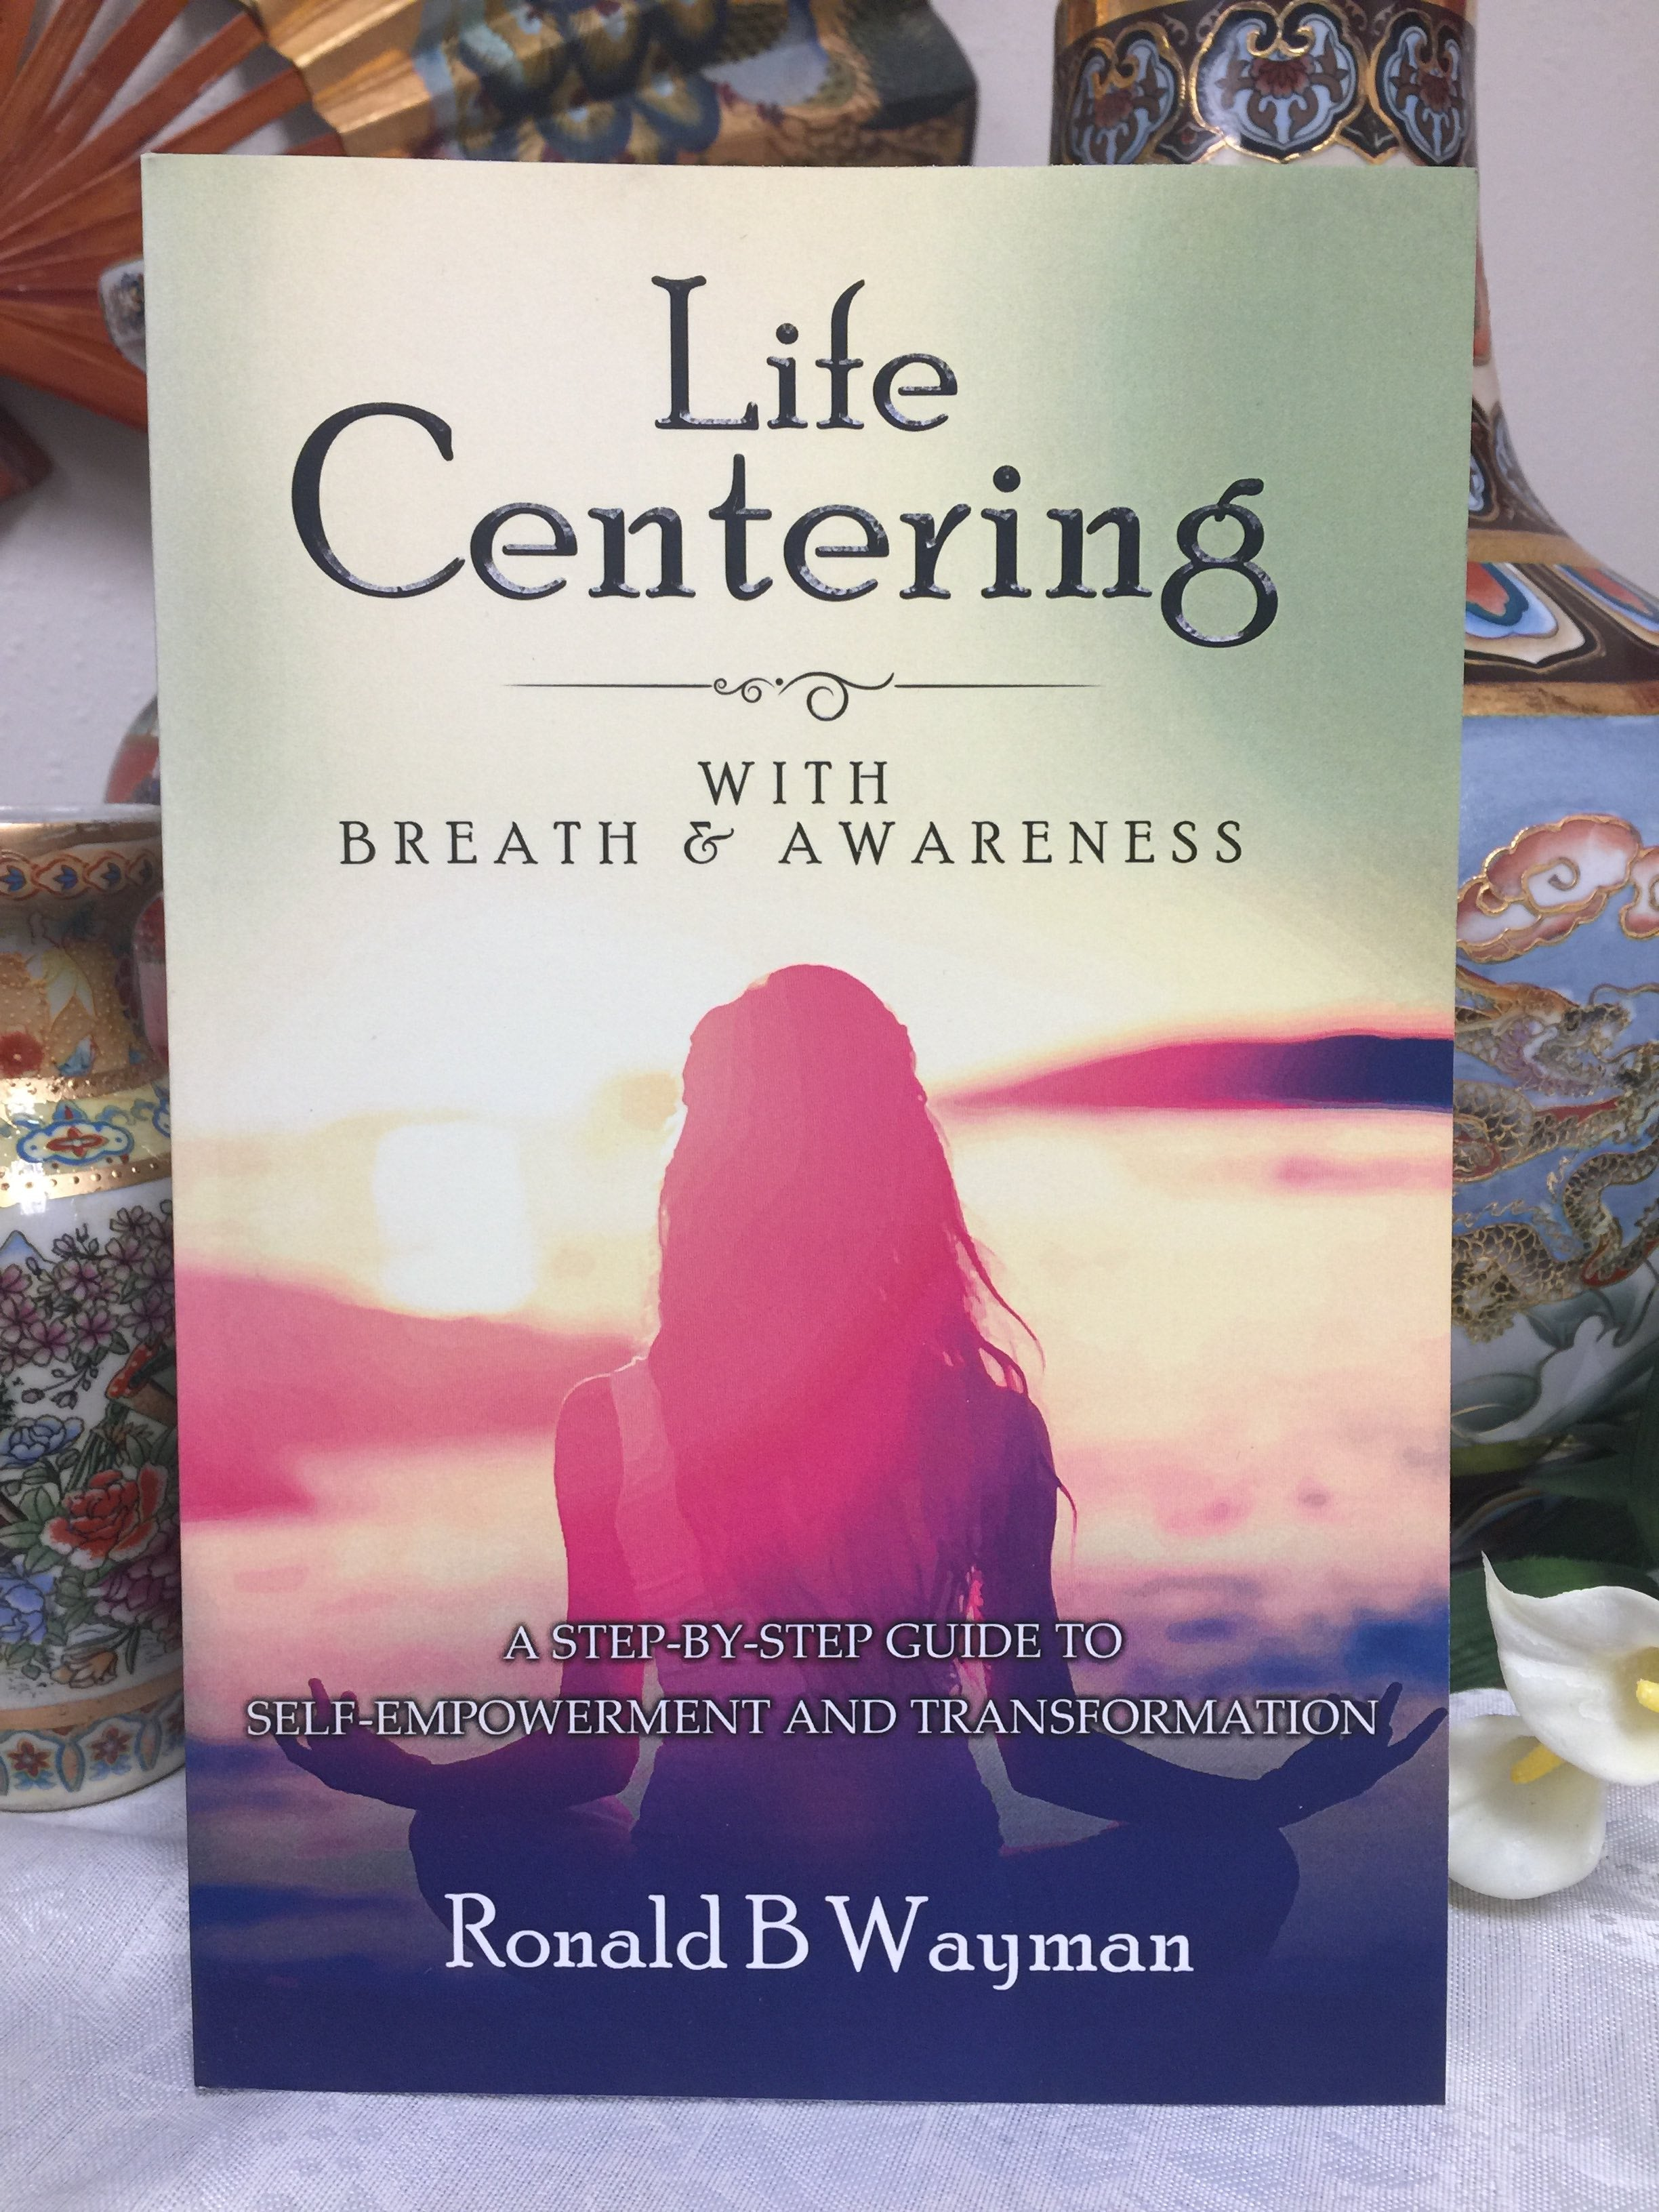 Life Centering with Breath and Awareness by Ronald B. Wayman